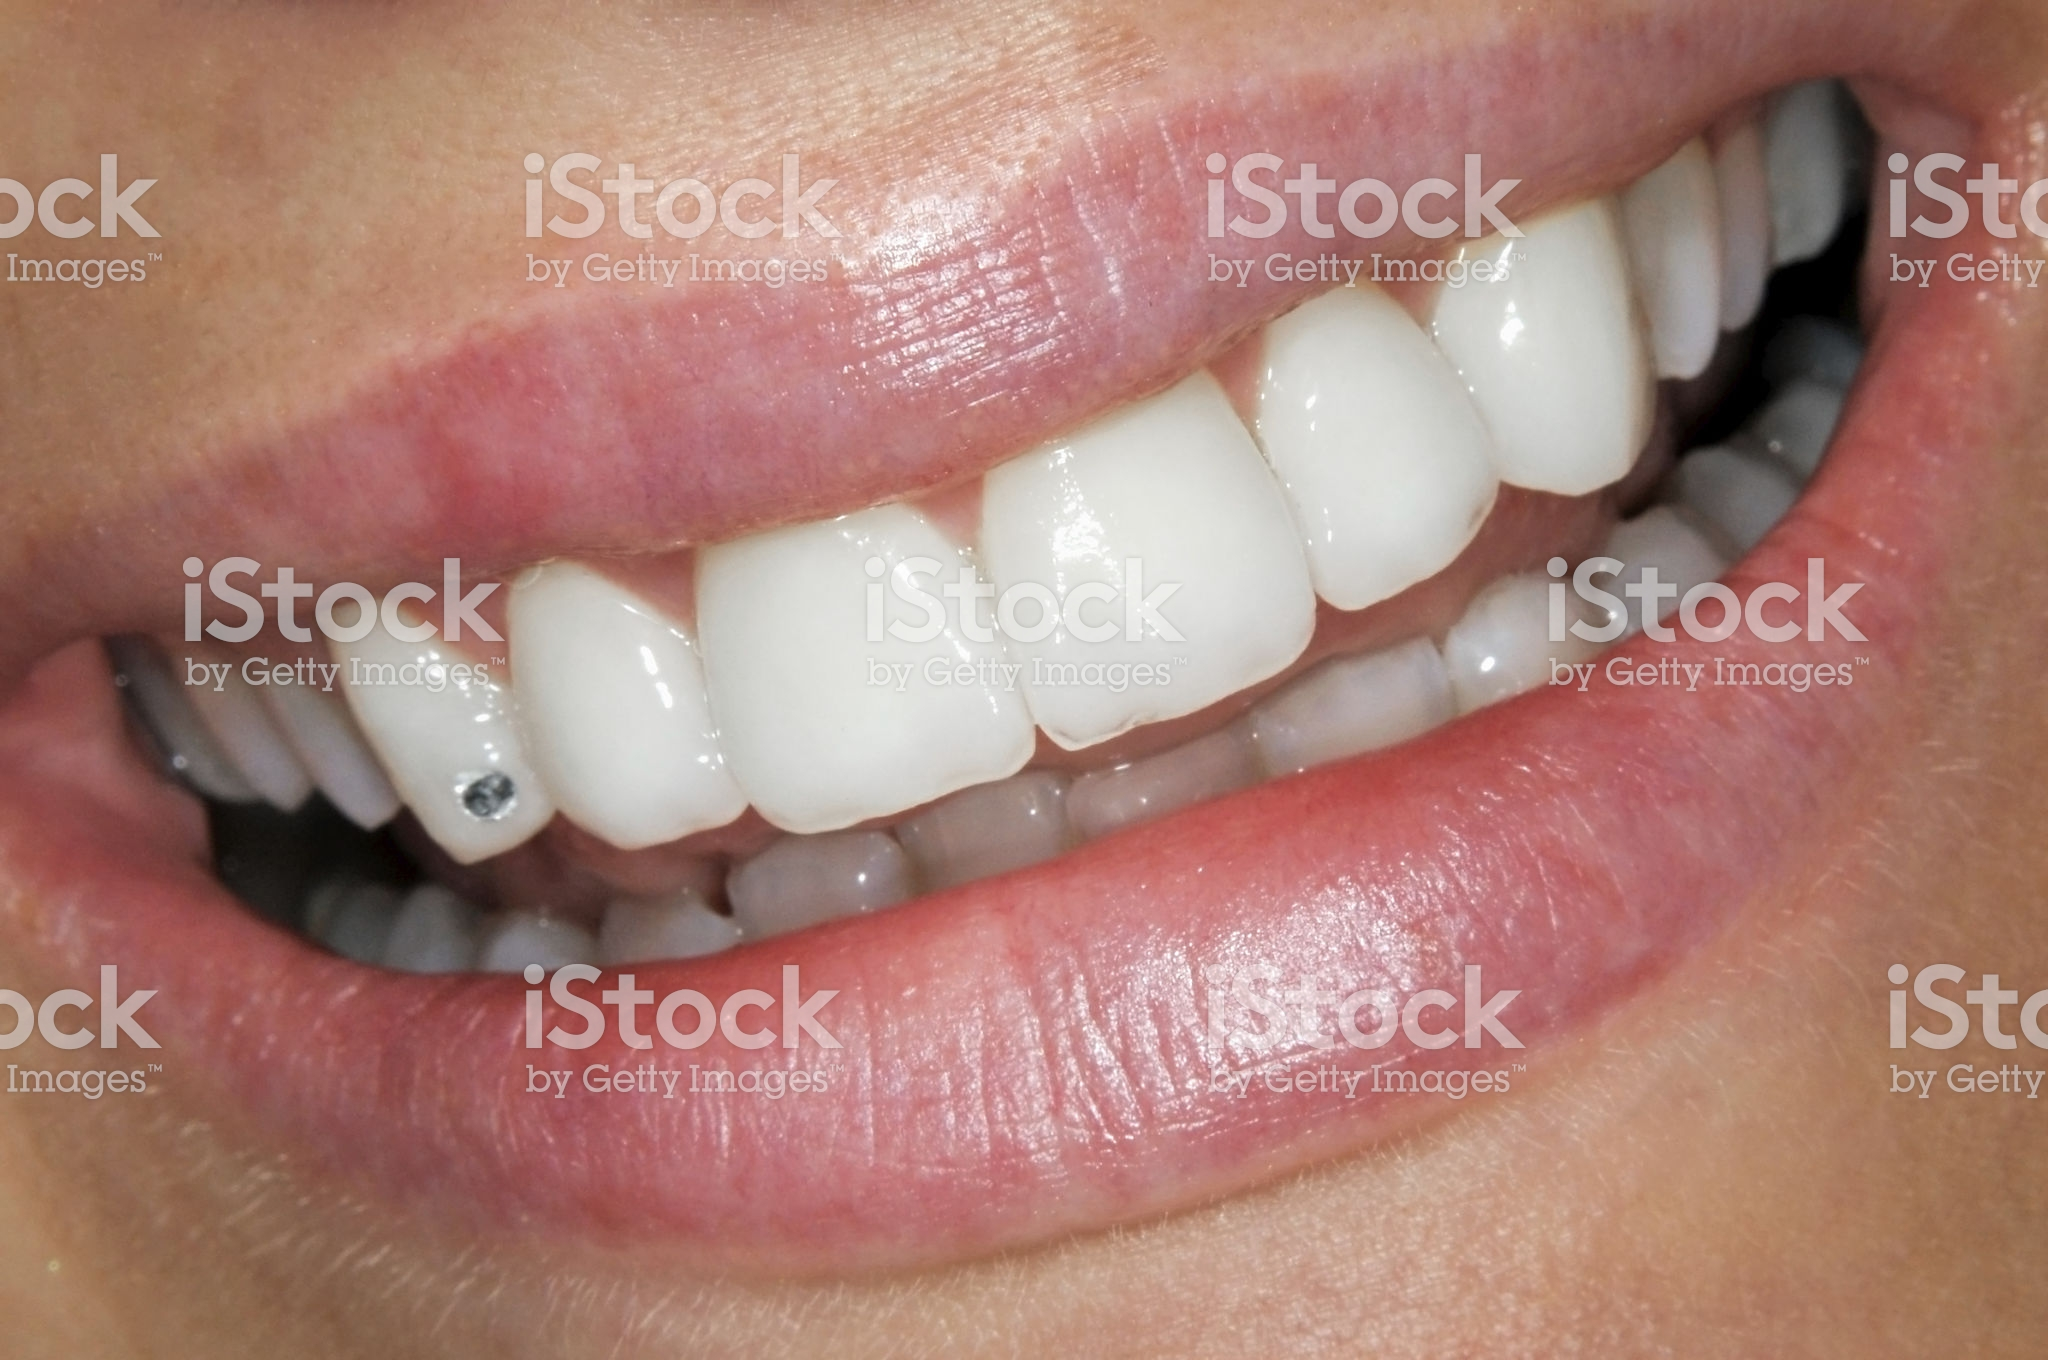 Dents En Porcelaine Recouvrement Labial Dentiste Saint Georges Dent En Céramique